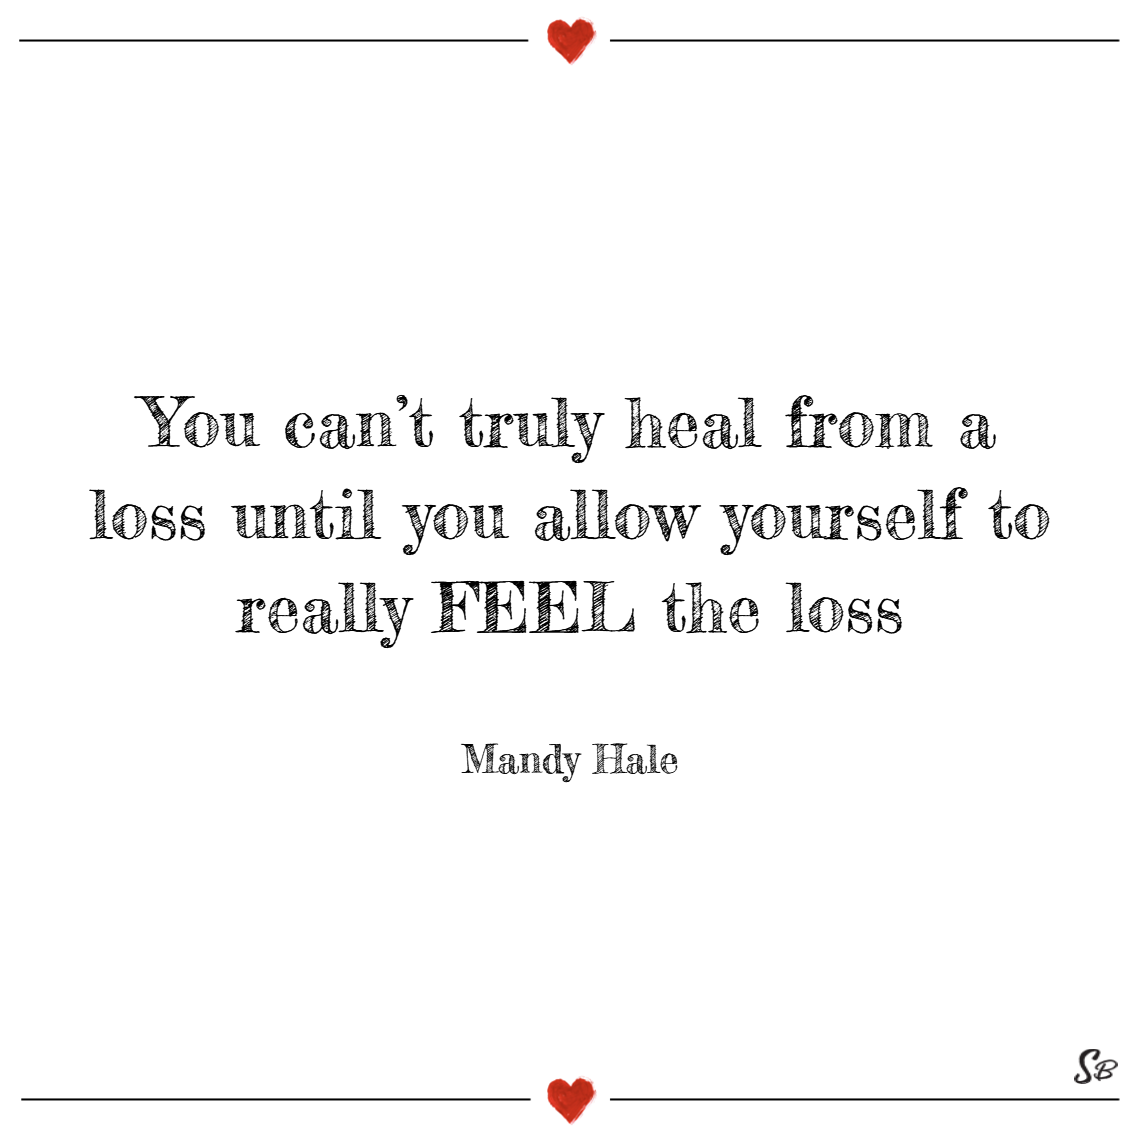 You can't truly heal from a loss until you allow yourself to really feel the loss. – mandy hale